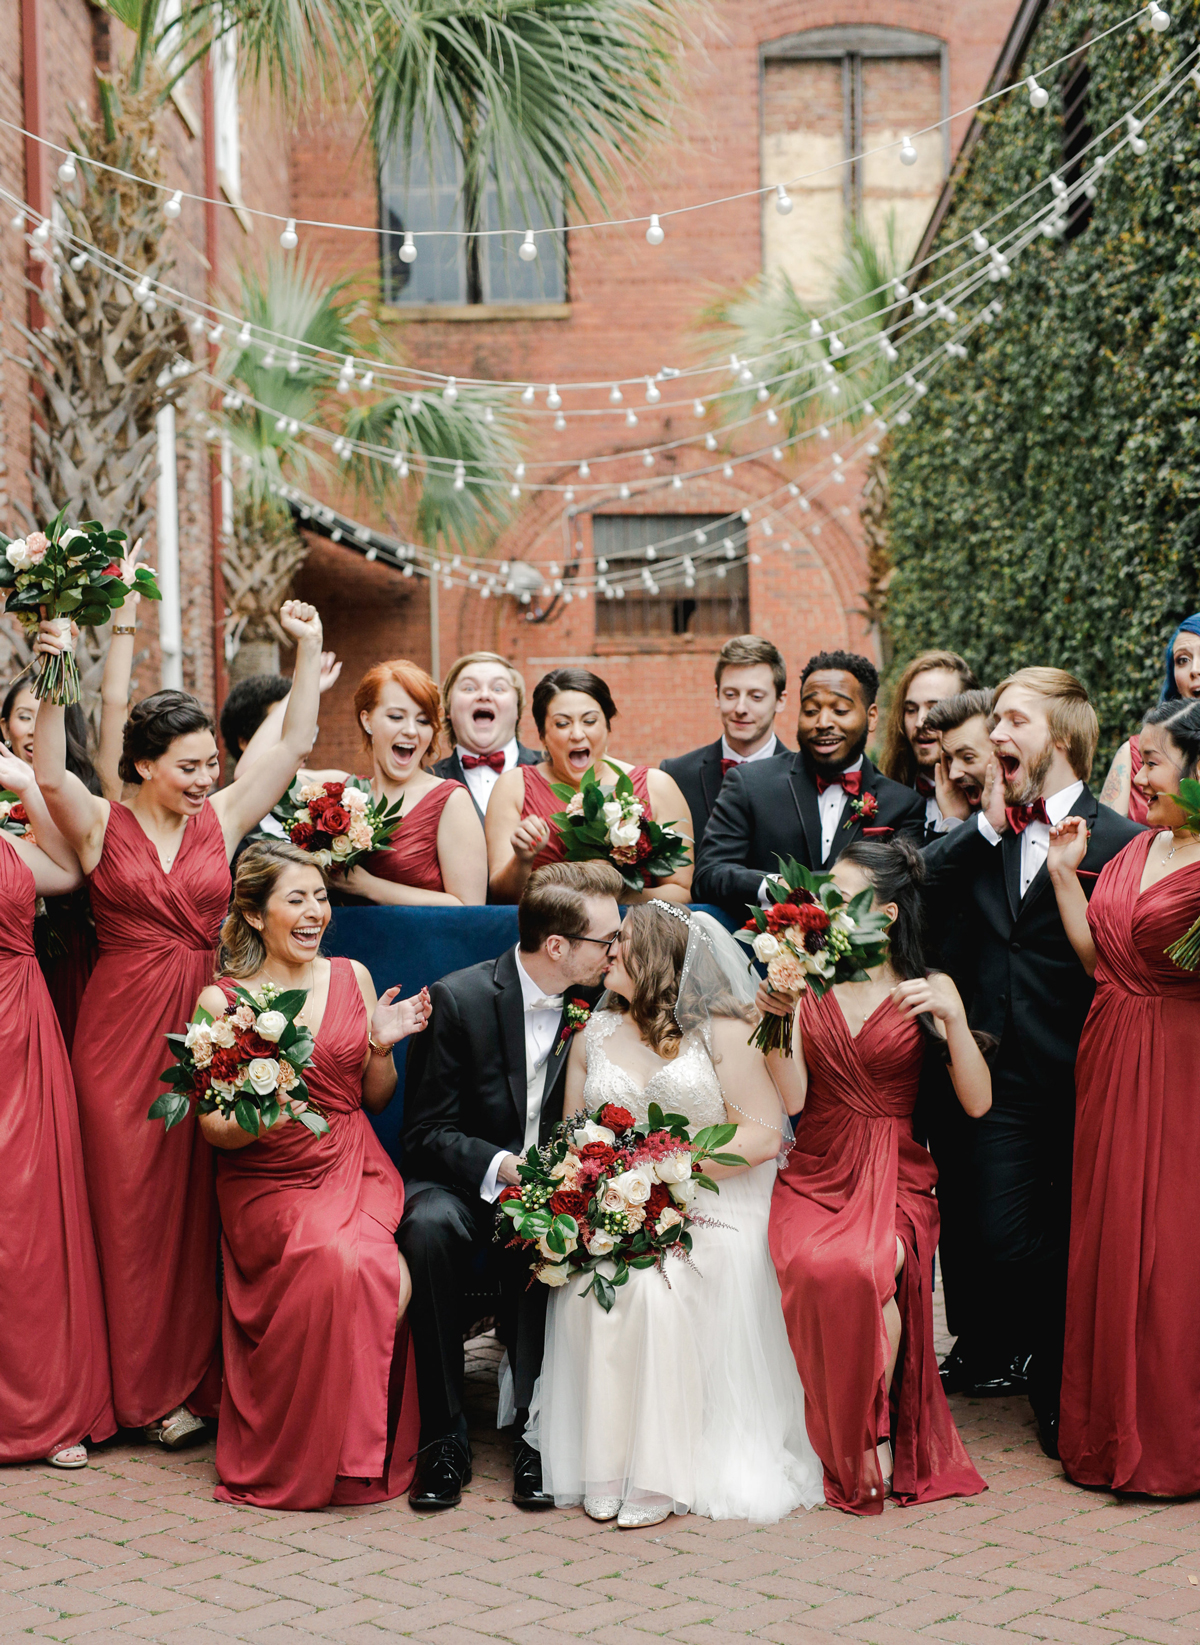 A Chic, Rustic Winter Wedding in South Carolina